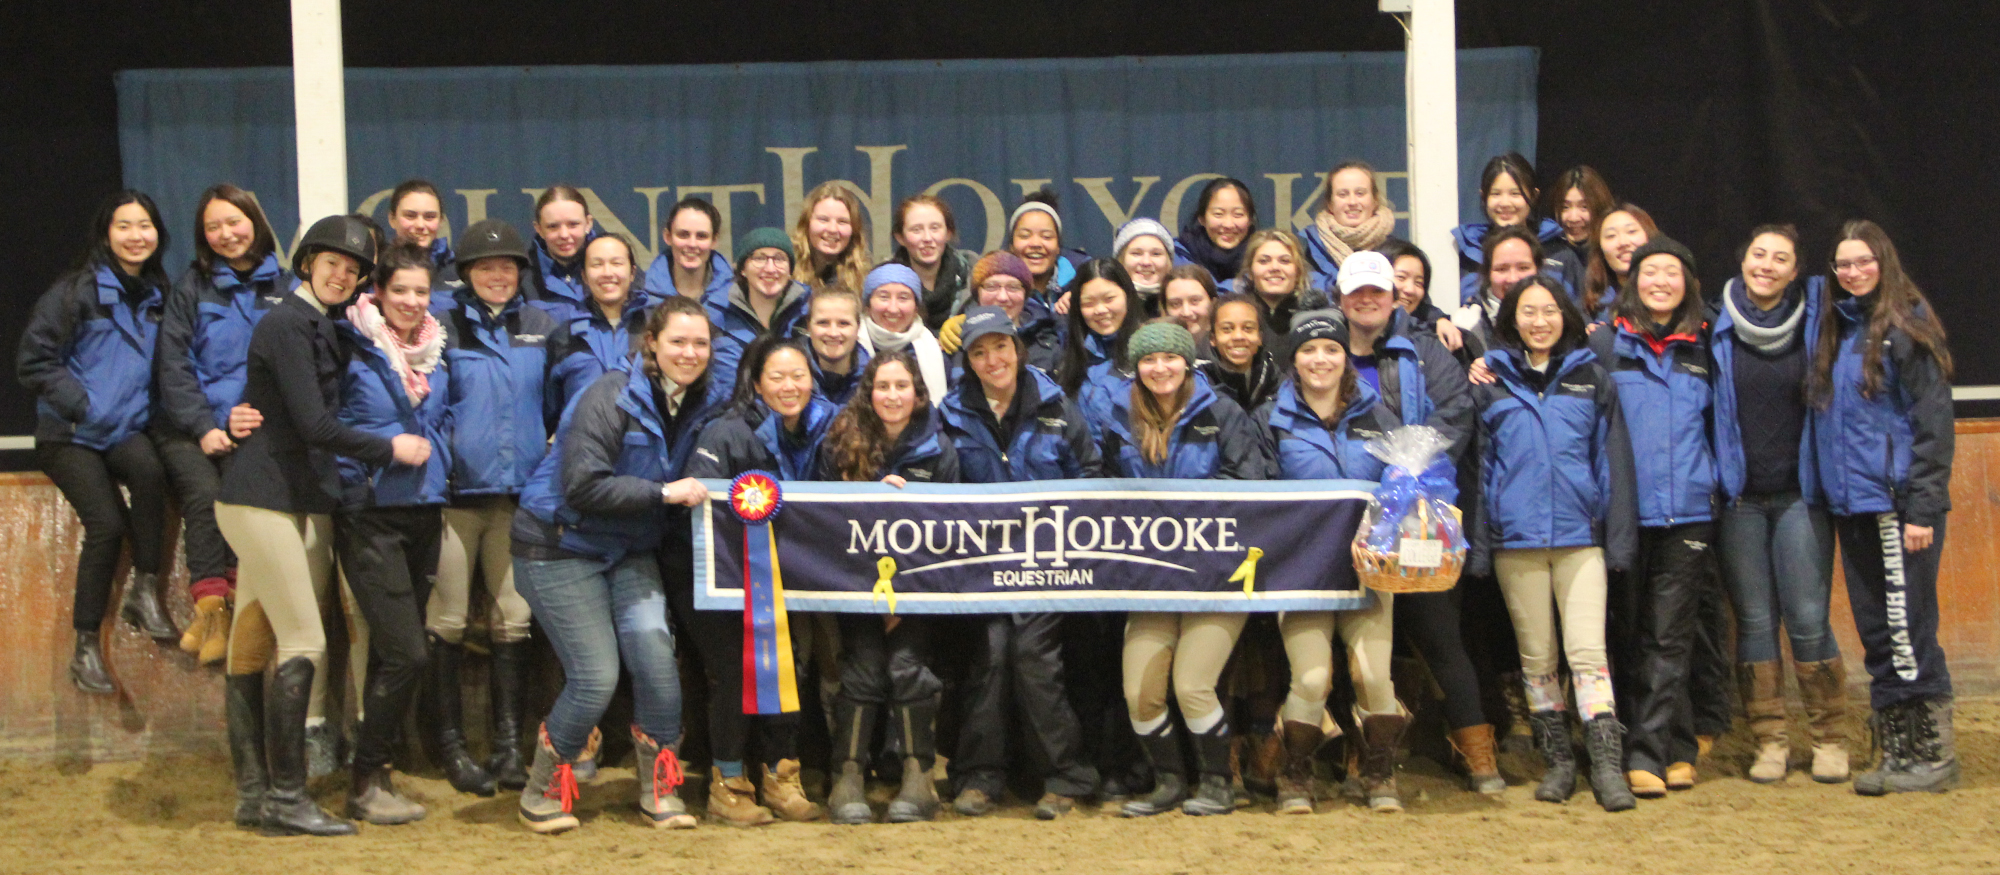 Photo of the MHC Riding team following their win on Mar. 2, 2019 at their home show.